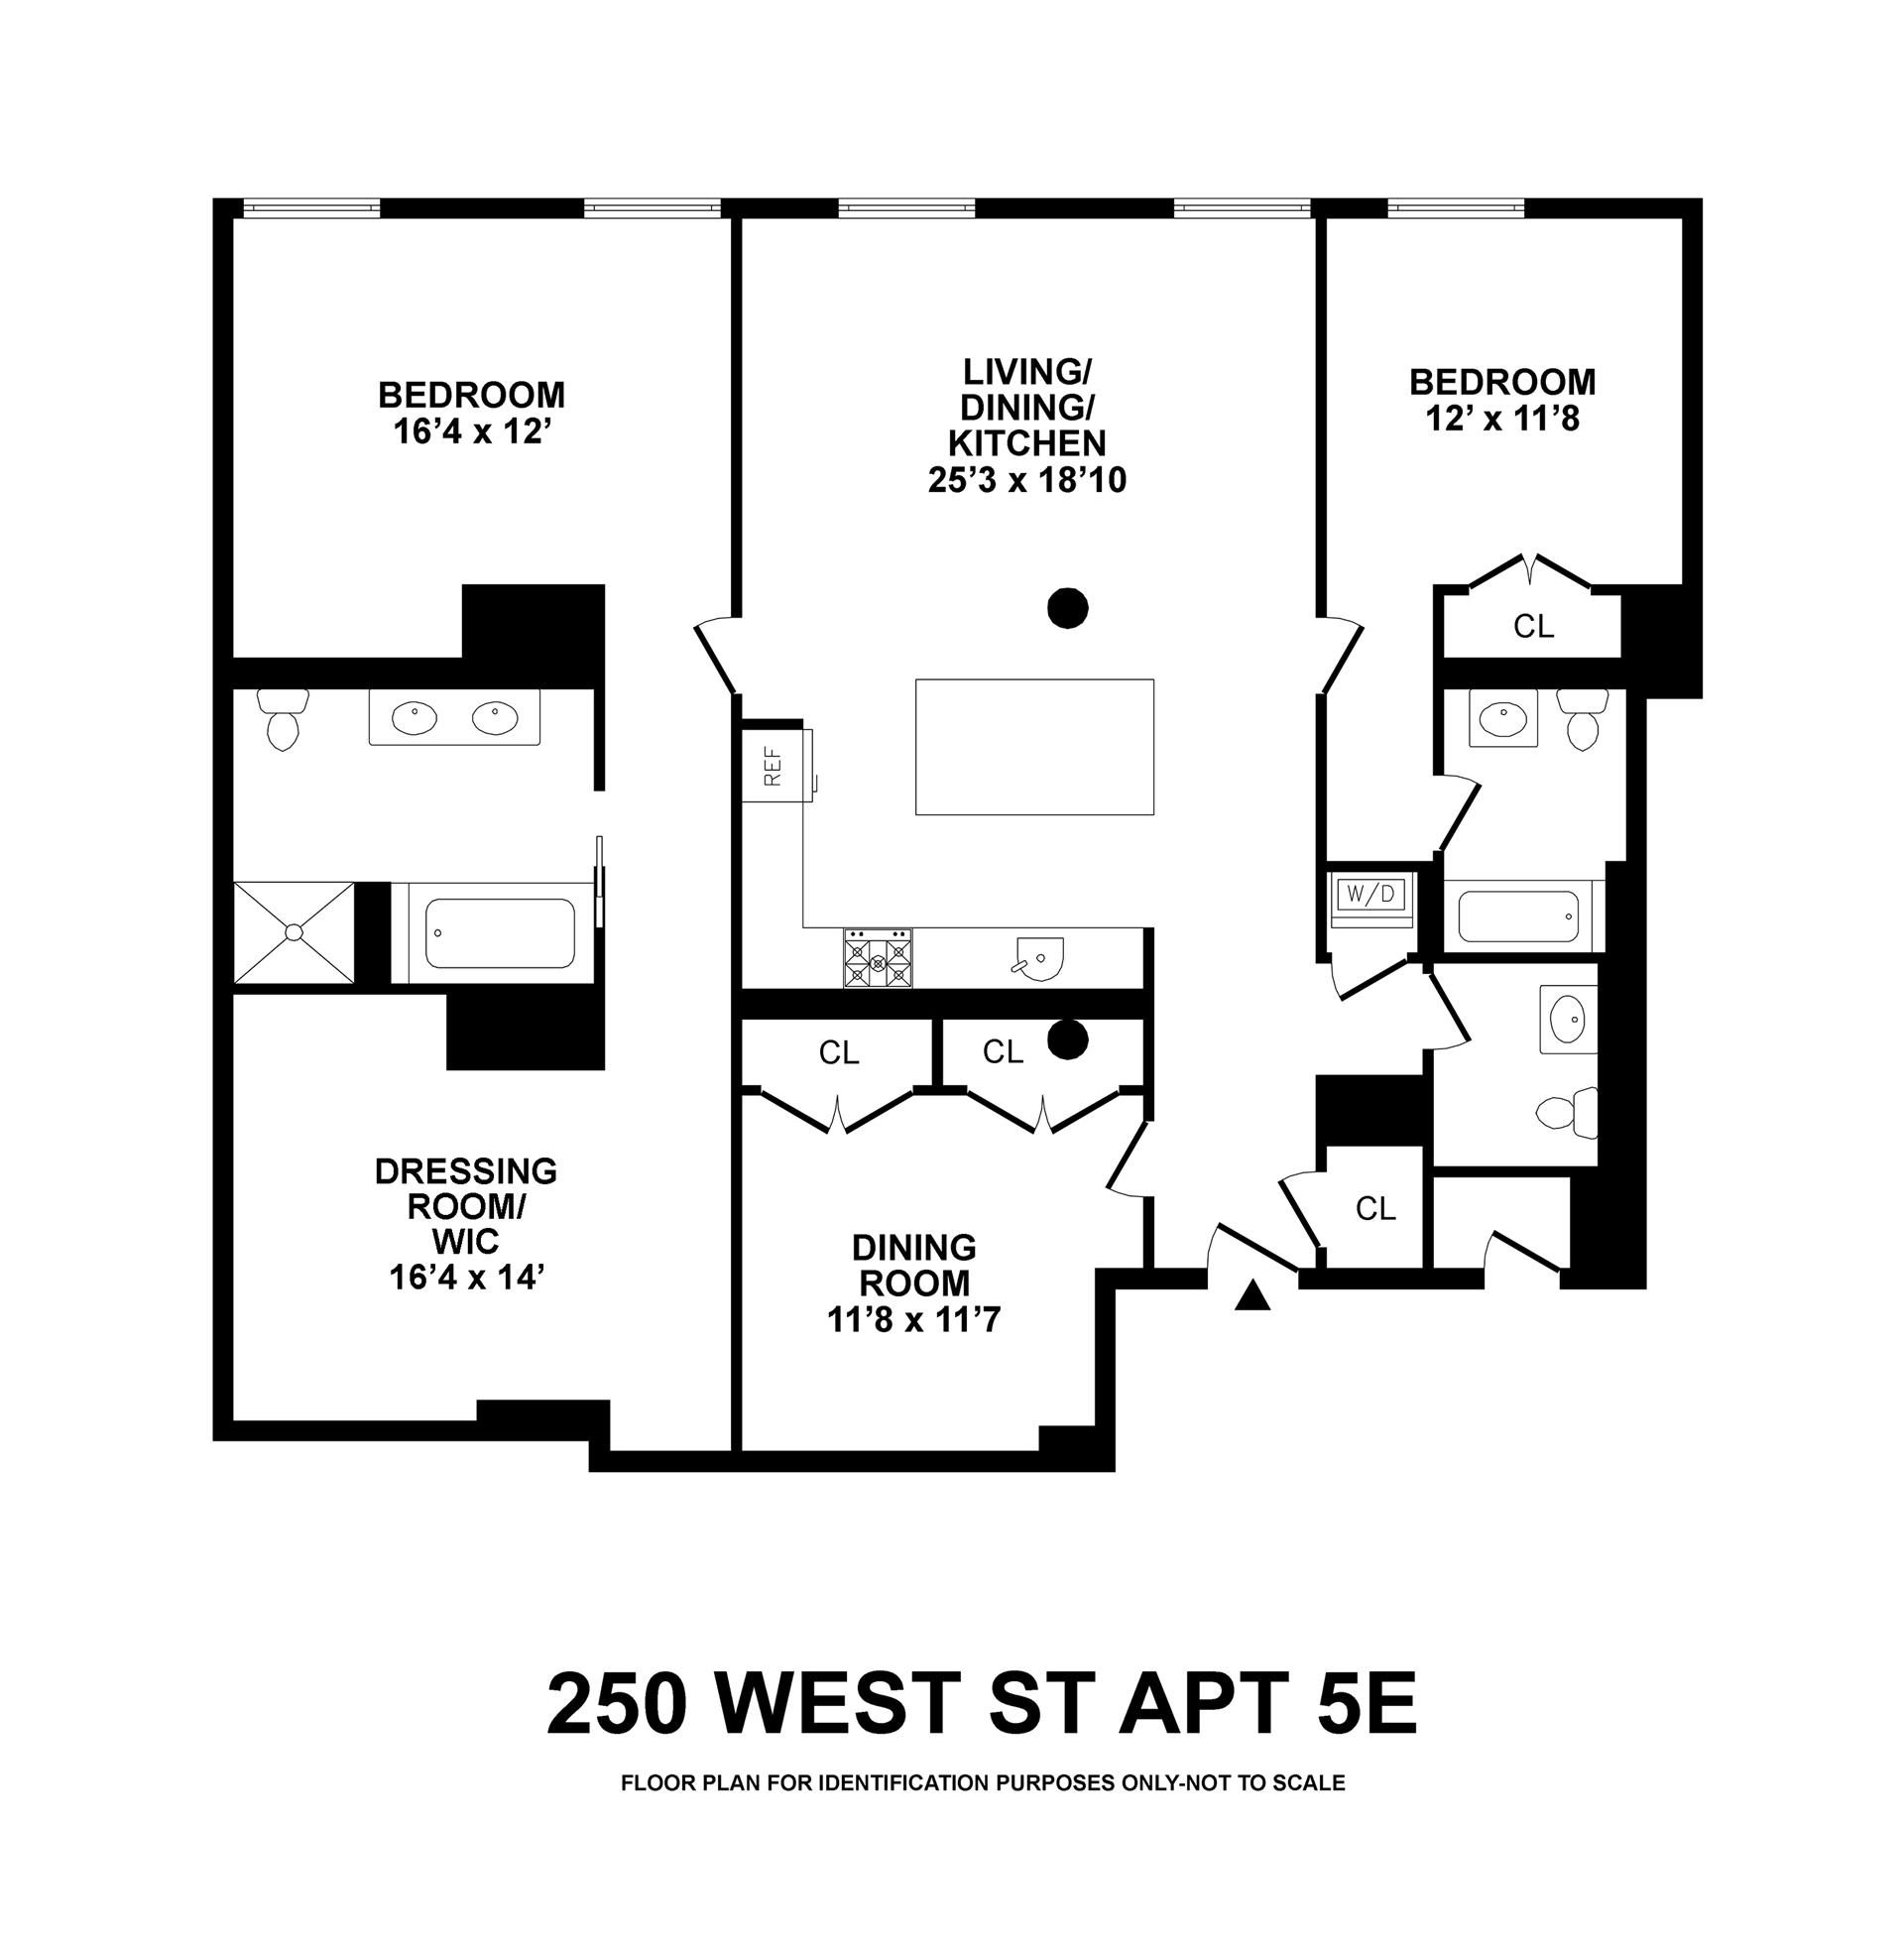 Floor plan of 250 West St, 5E - TriBeCa, New York